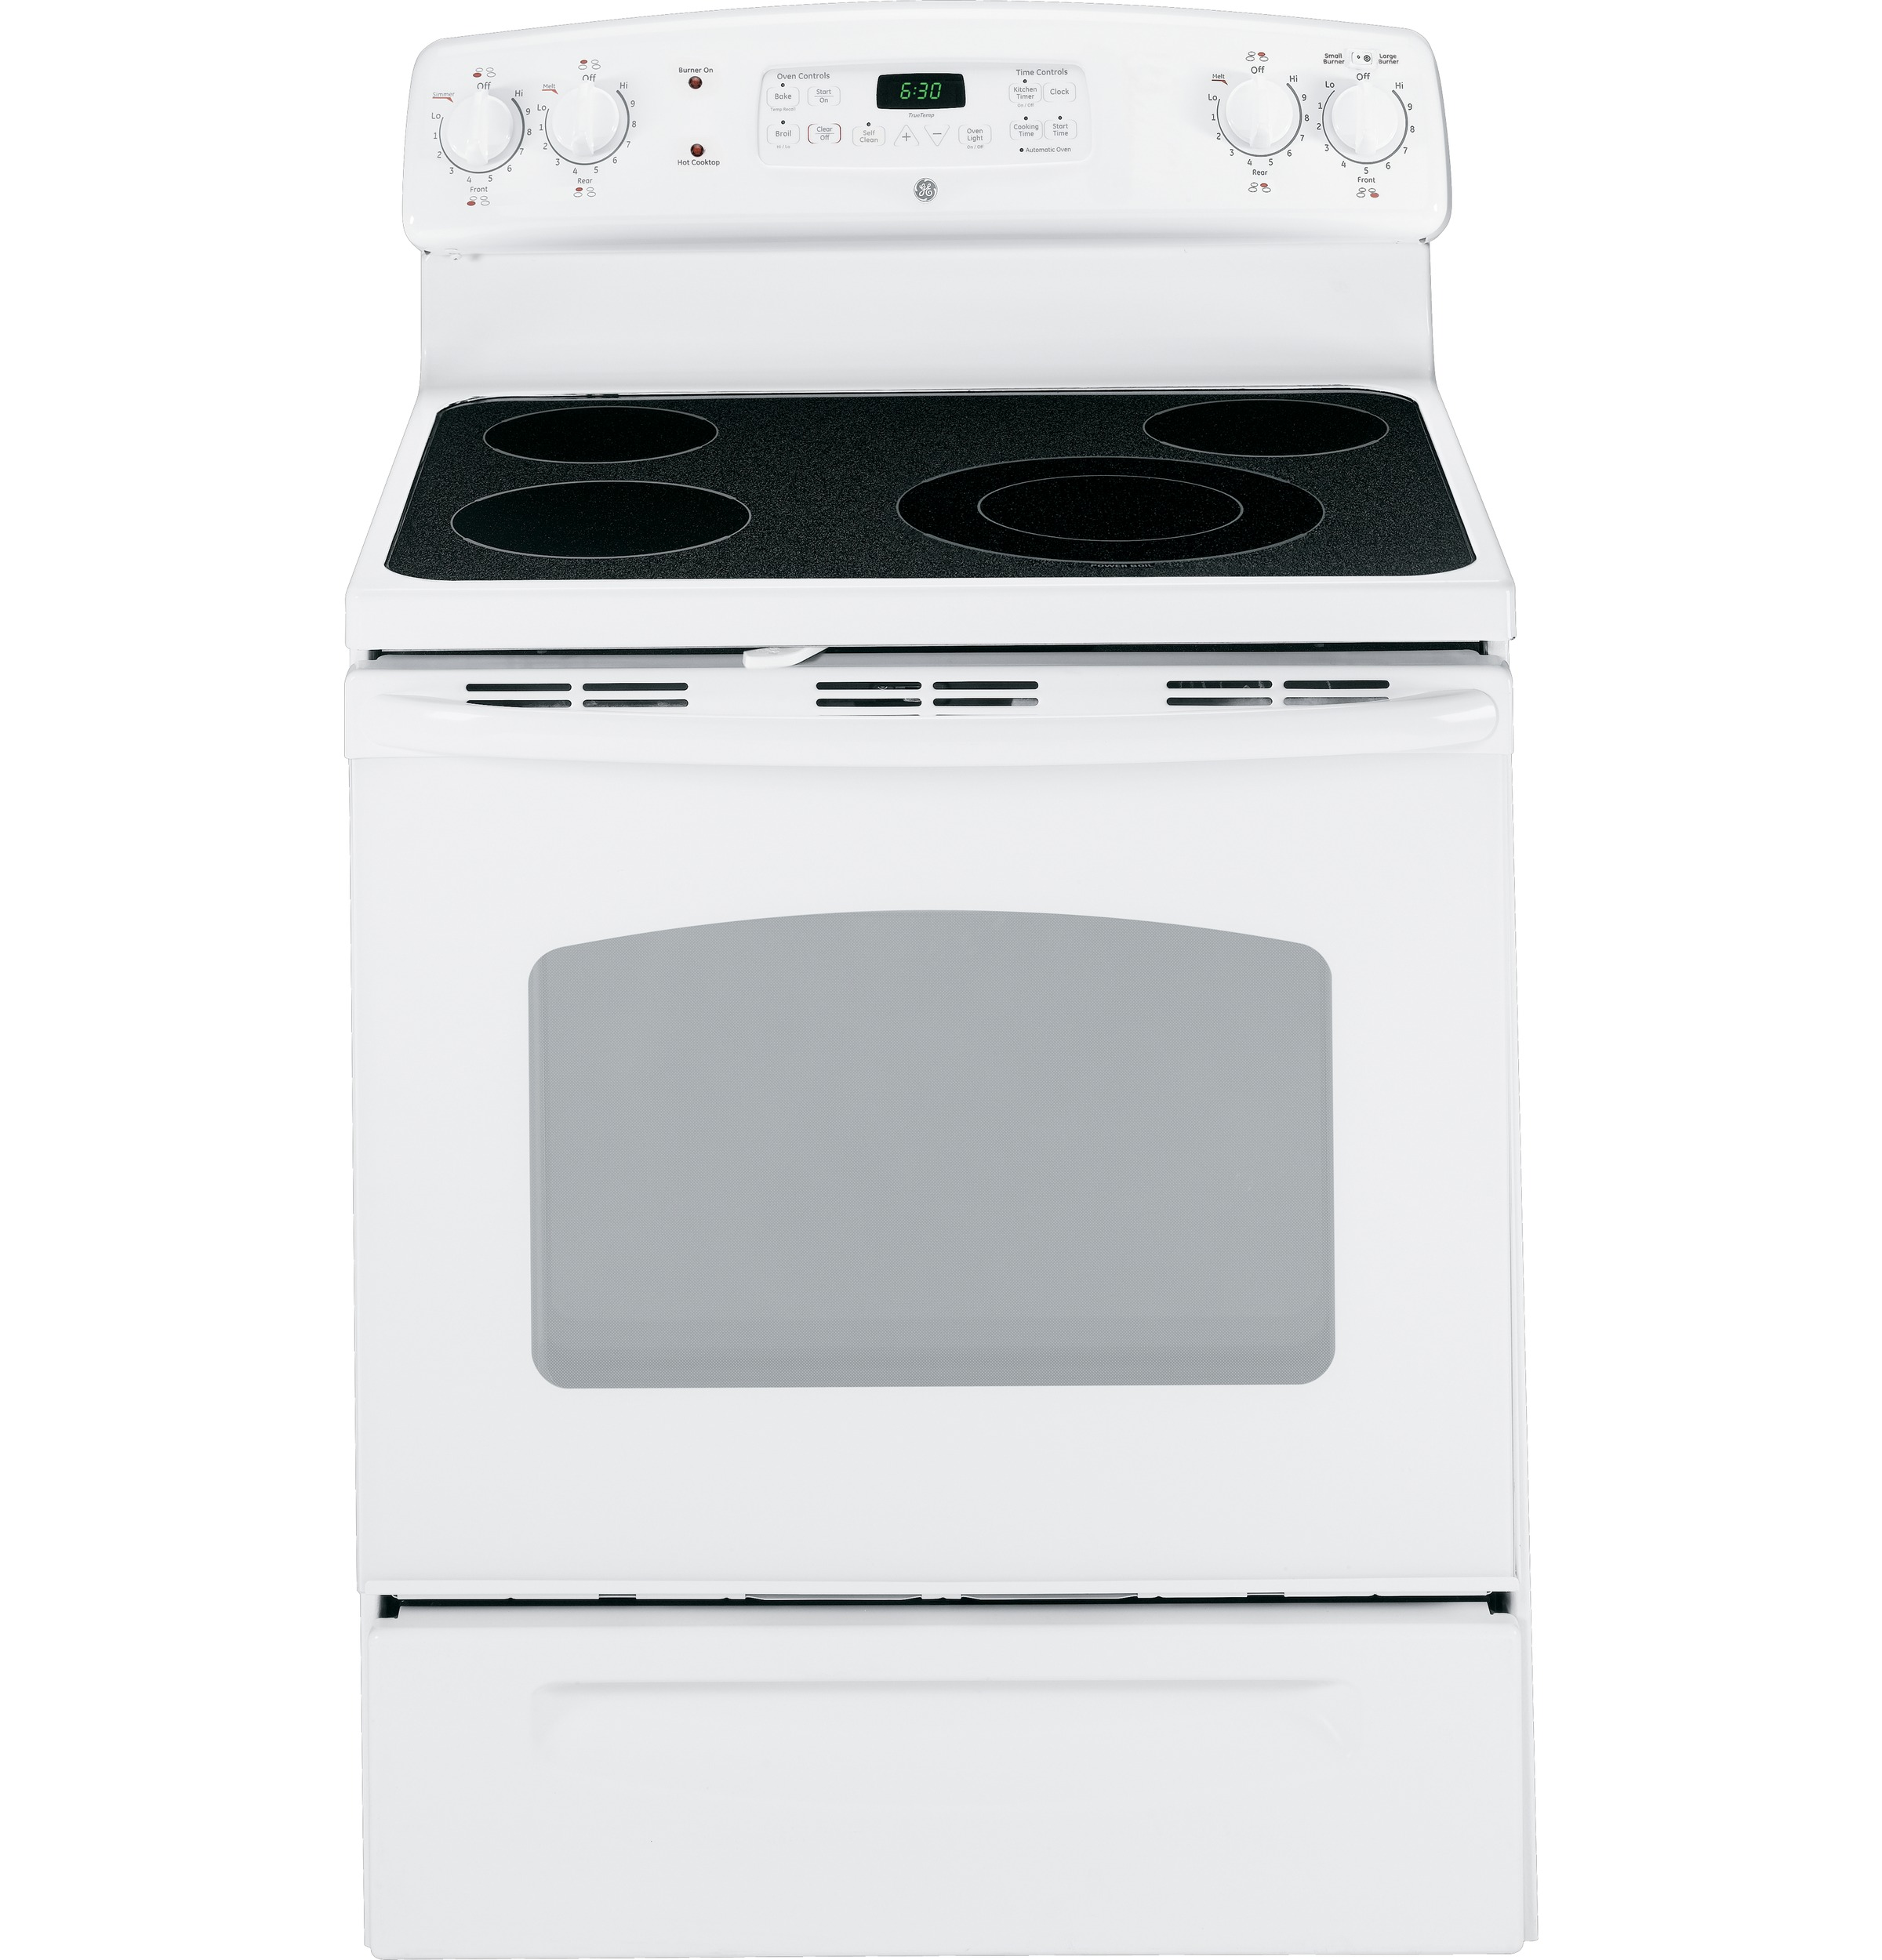 ge® 30 standing electric range jb640drww ge appliances product image product image